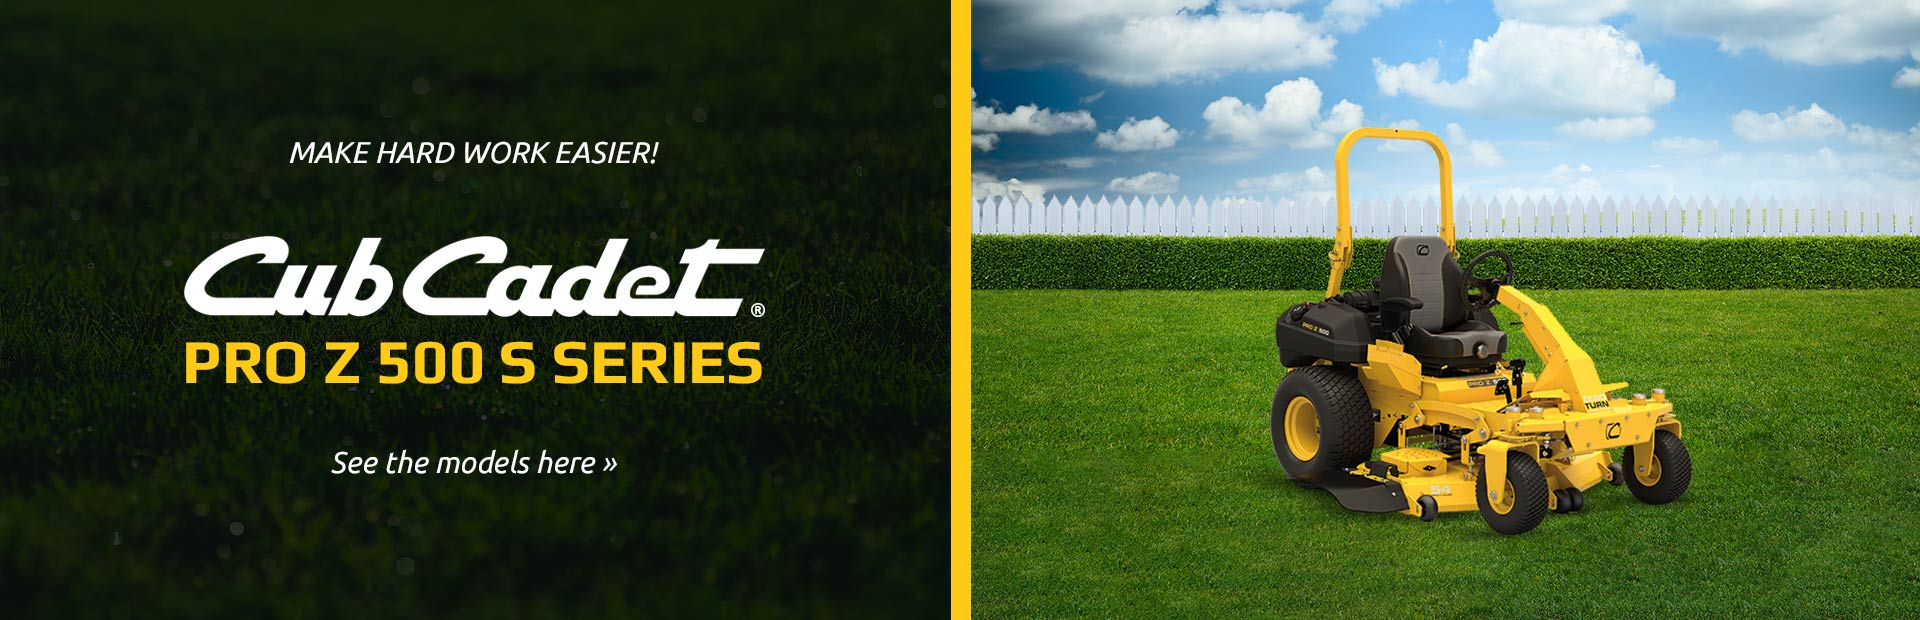 Cub Cadet Pro Z 500 S Series: Click here to view the models.